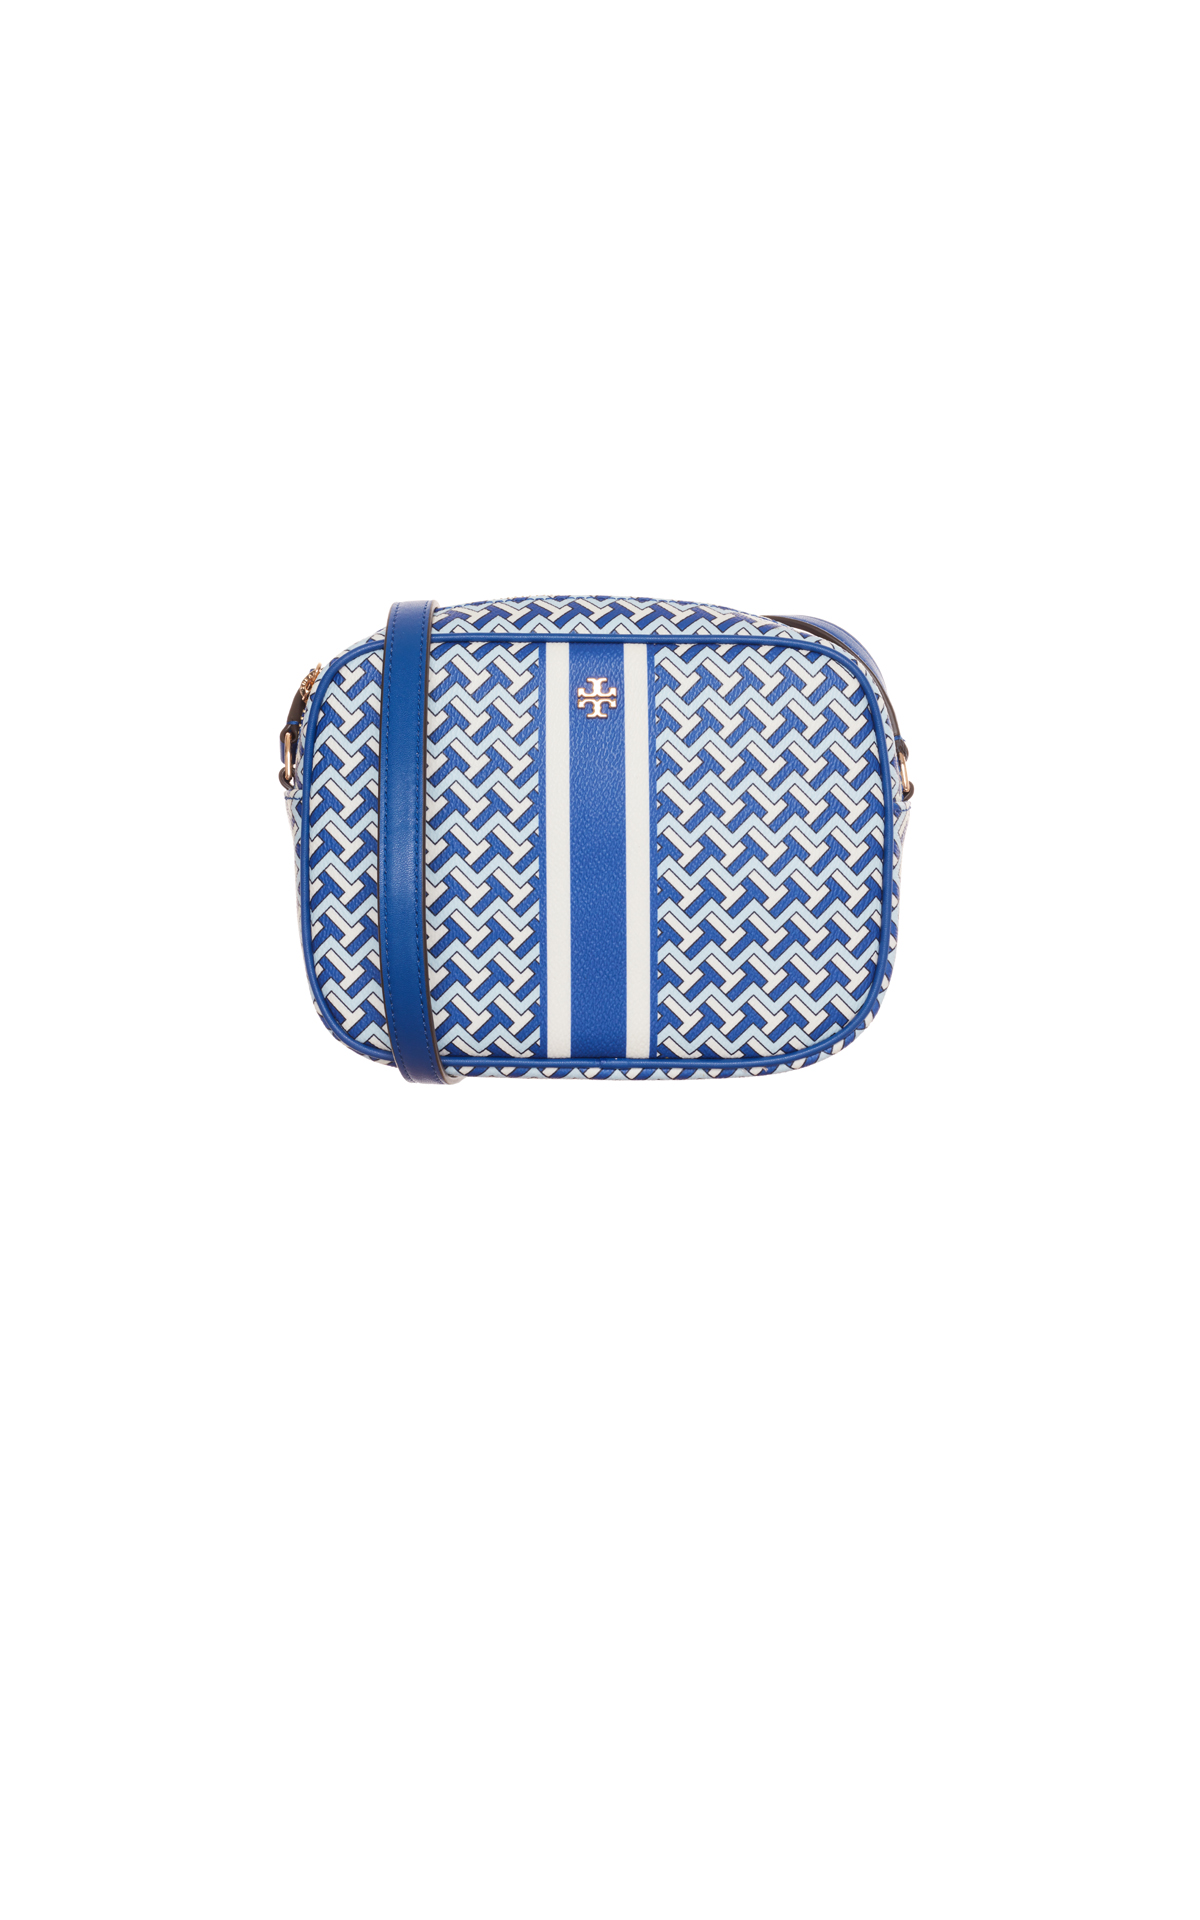 Tory Burch  T zag crossbody bag from Bicester Village